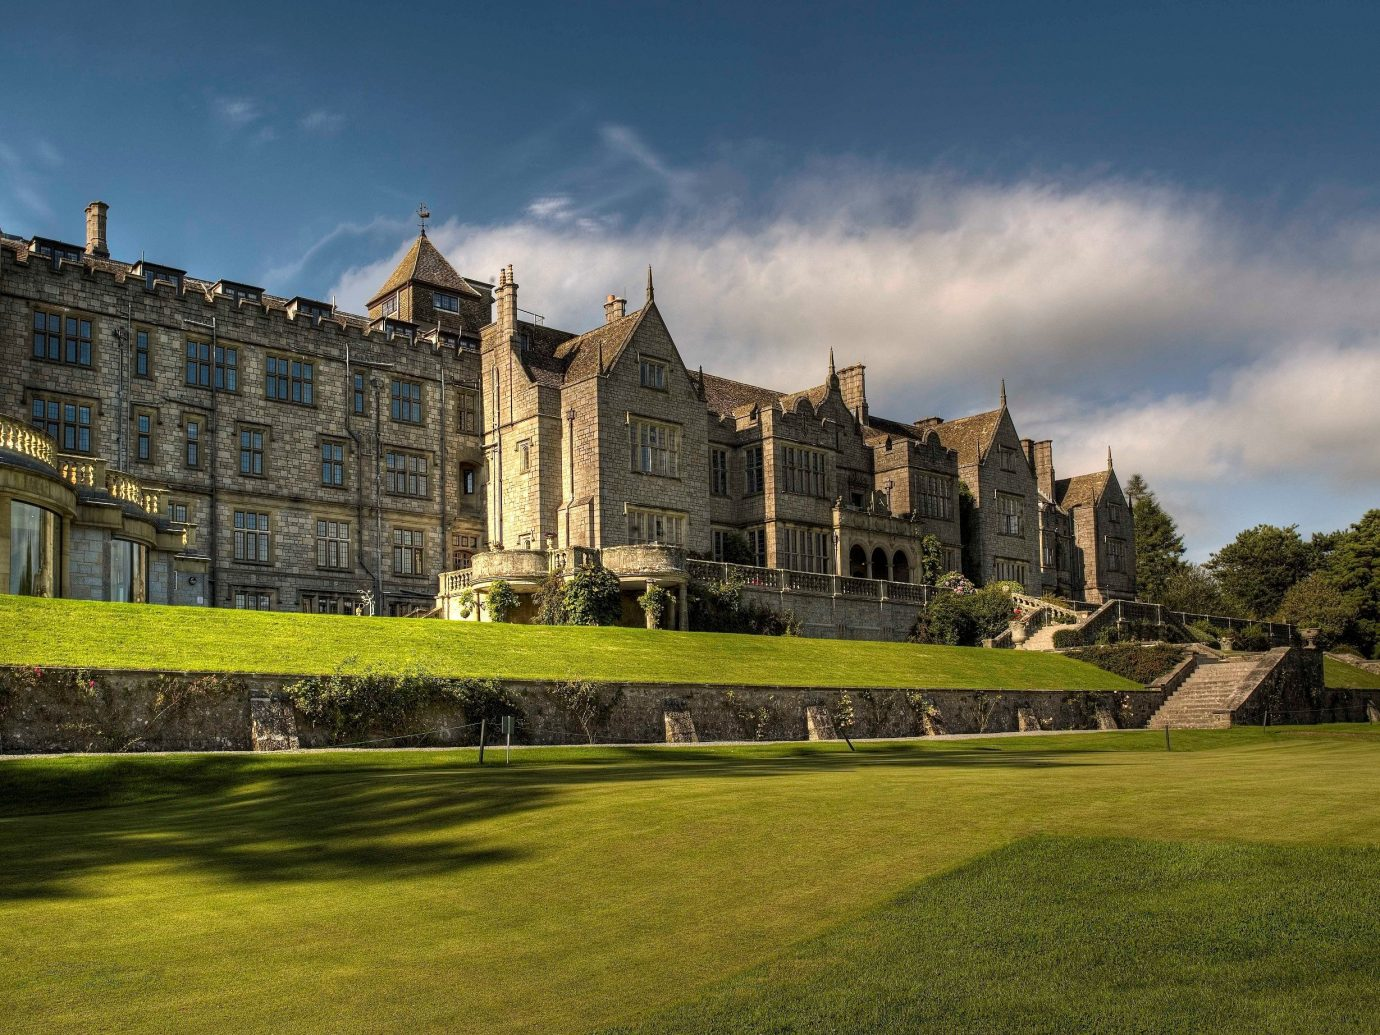 Hotels grass outdoor sky building château stately home castle estate rural area lawn old palace abbey mansion monastery grassy stone day lush